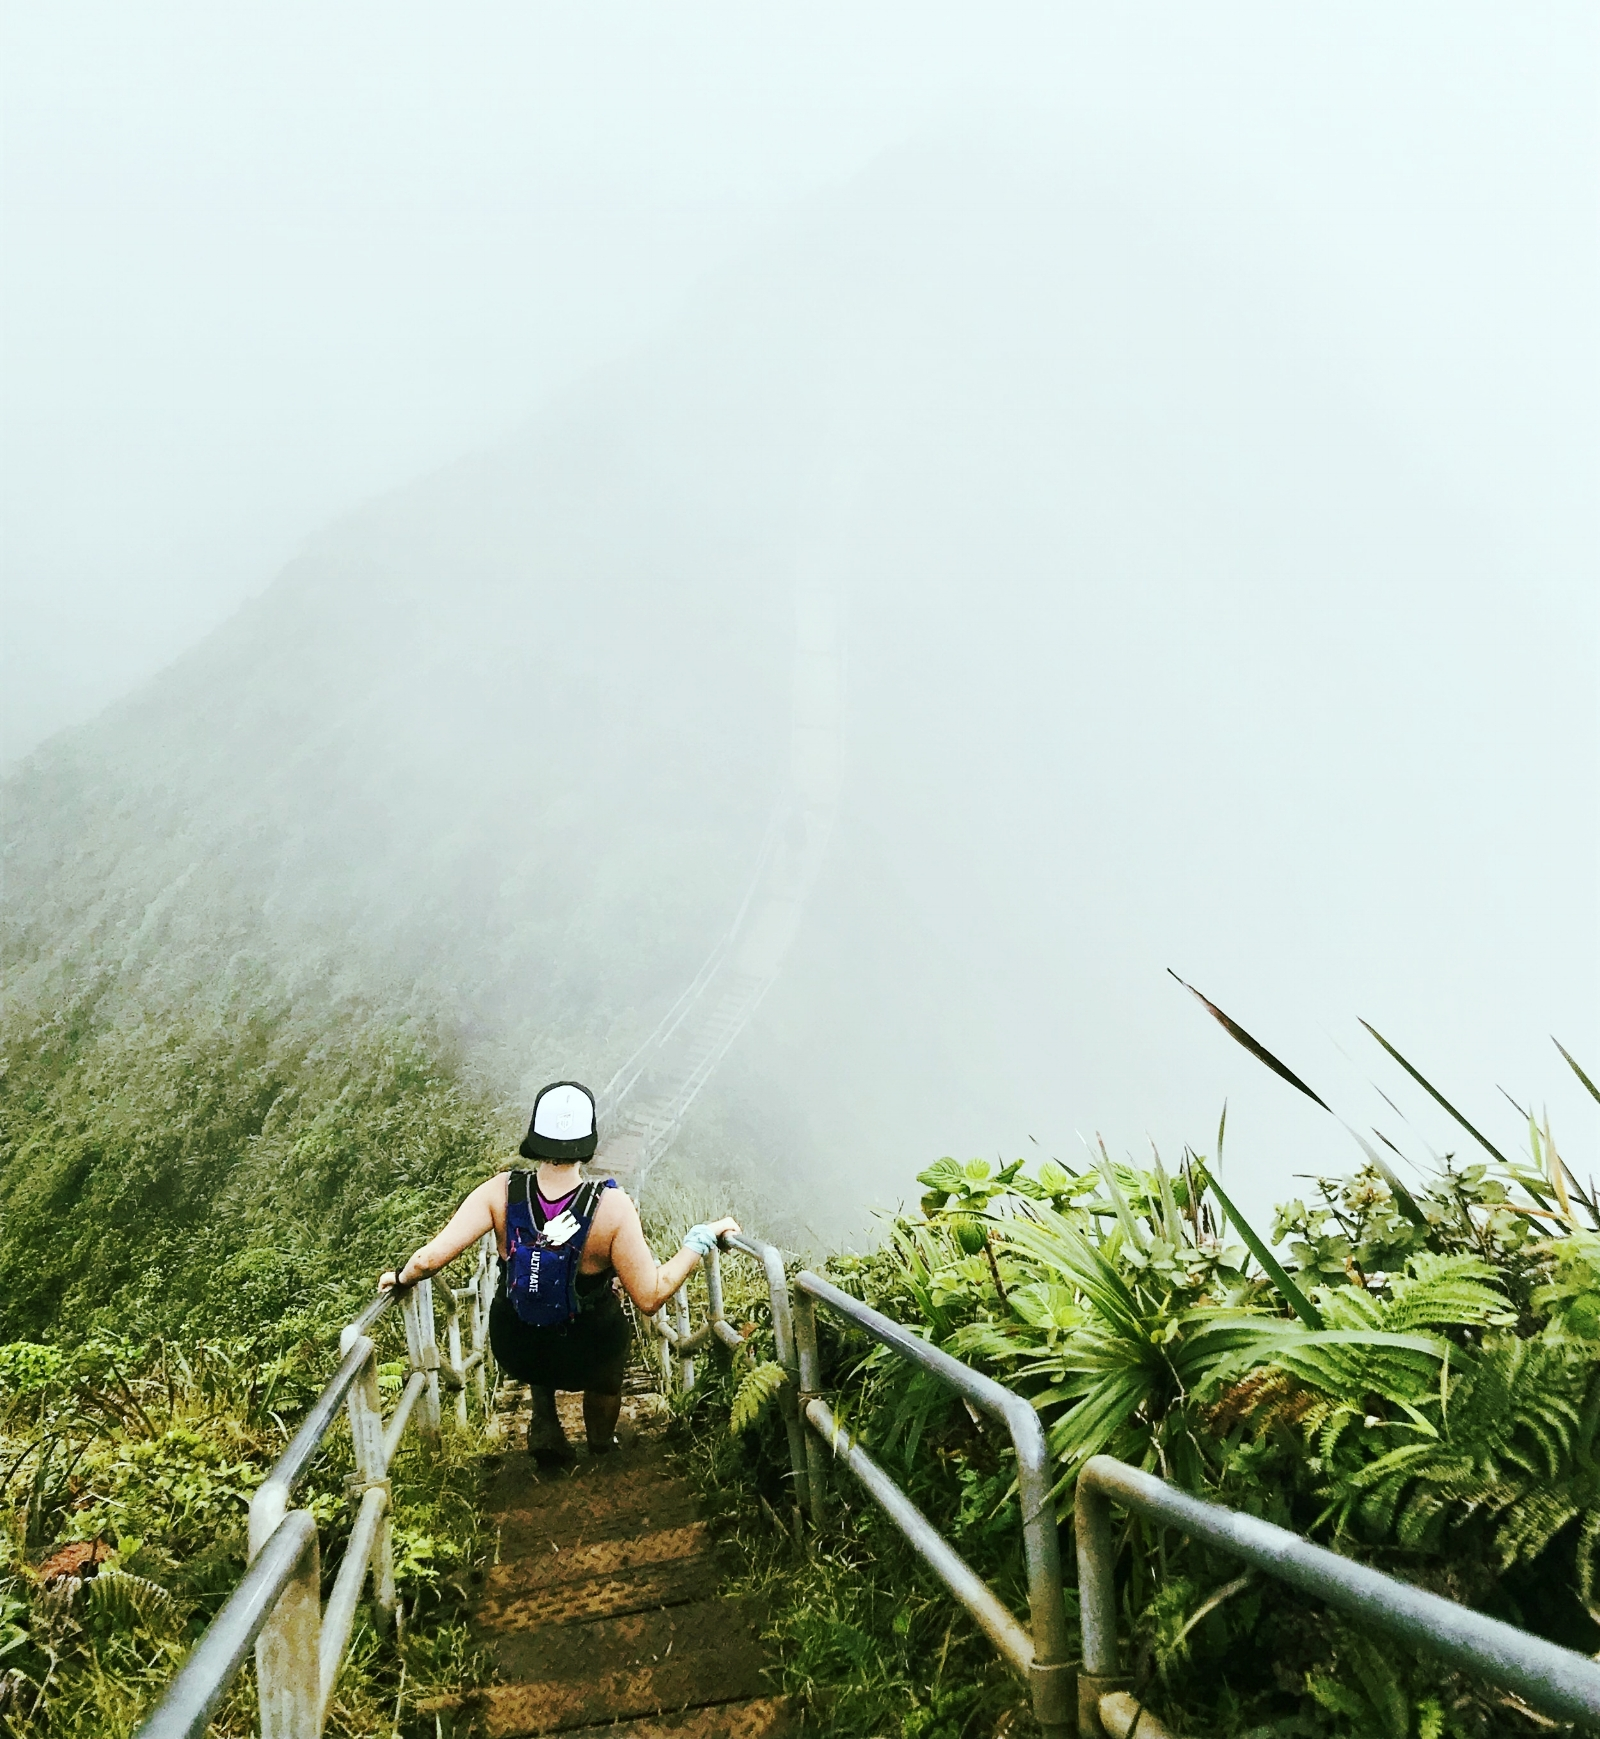 Climbing down the Stairway to Heaven on a foggy day.